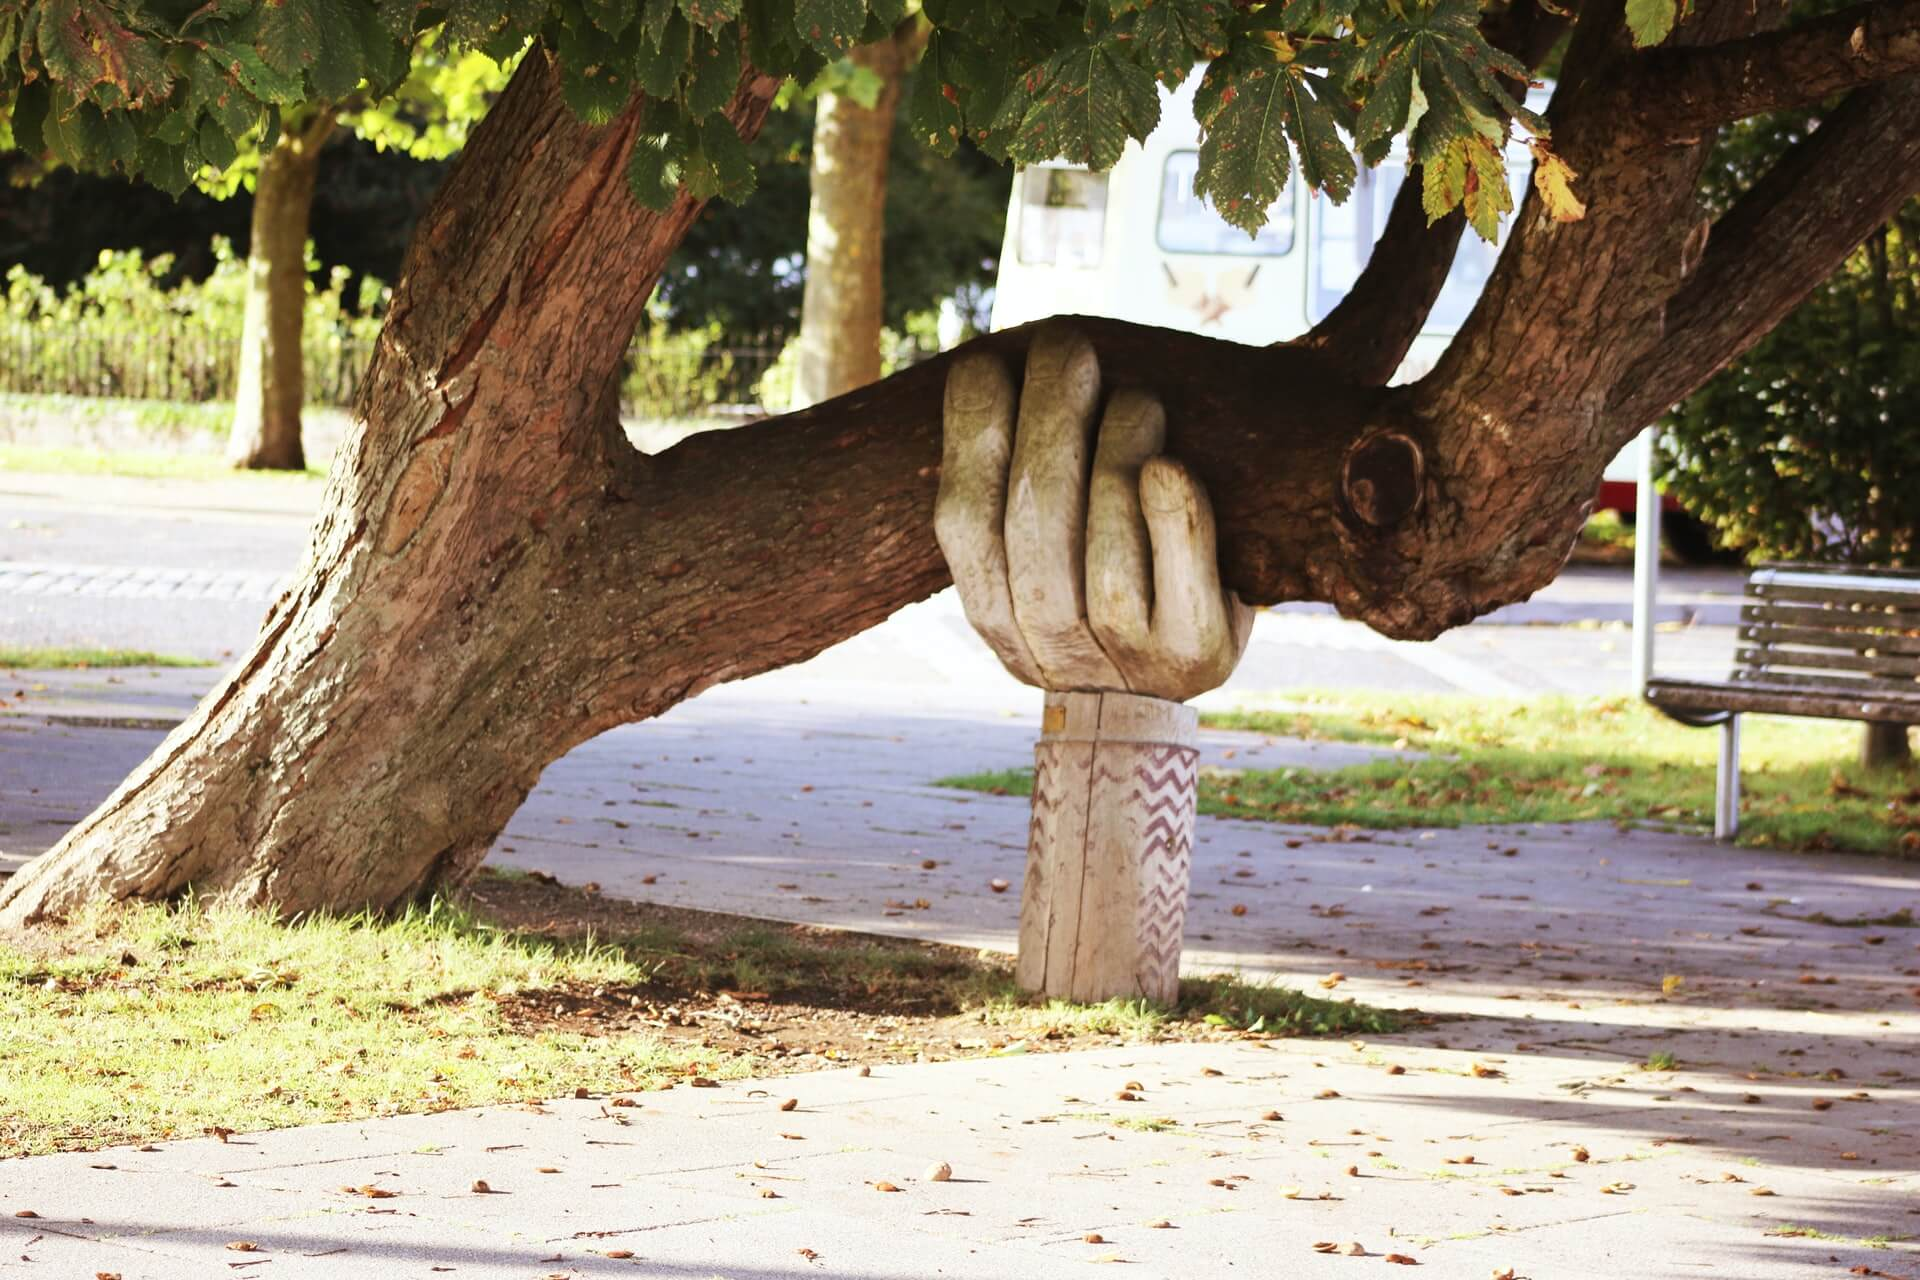 Tree branch held up by sculpture of a human hand. Photo by Neil Thomas from Unsplash